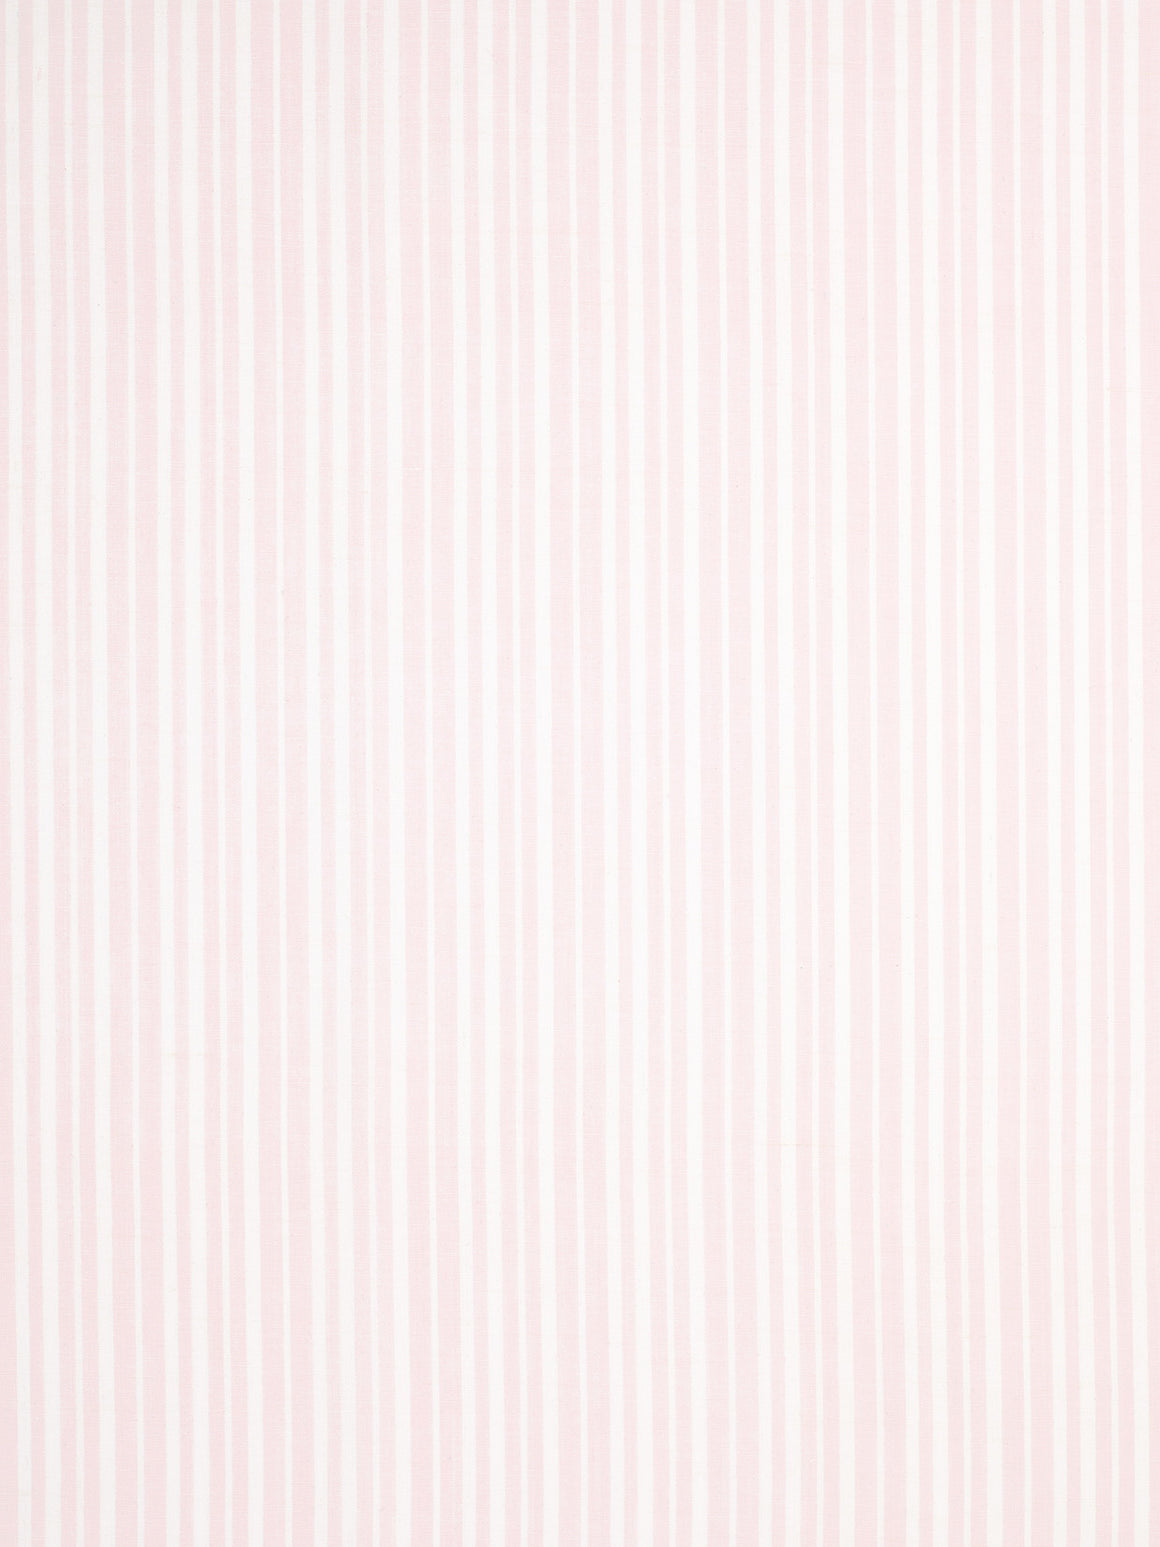 Palermo Ticking Stripe Cotton Linen Fabric by the Meter in Light Tea Rose Pink